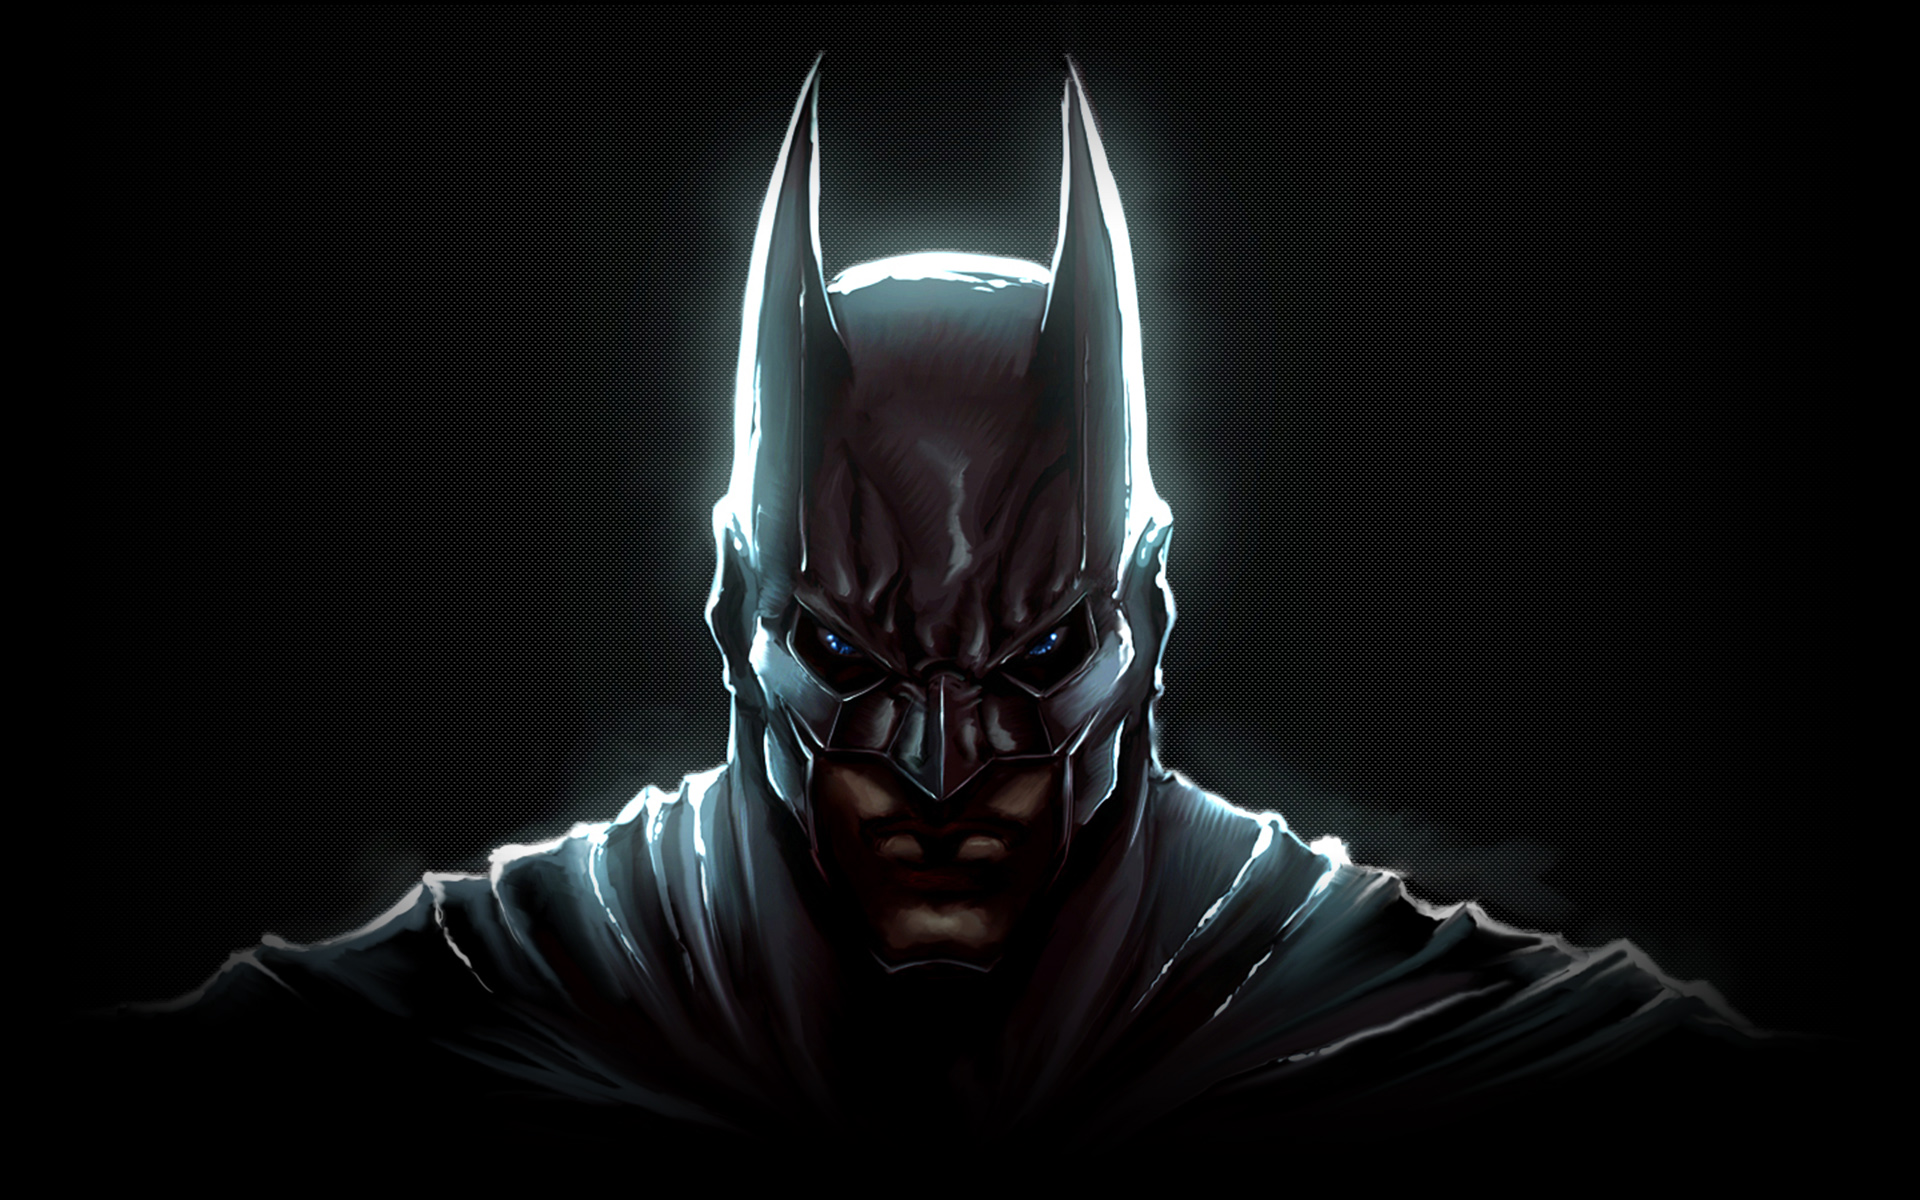 Dark Knight Batman 689.69 Kb